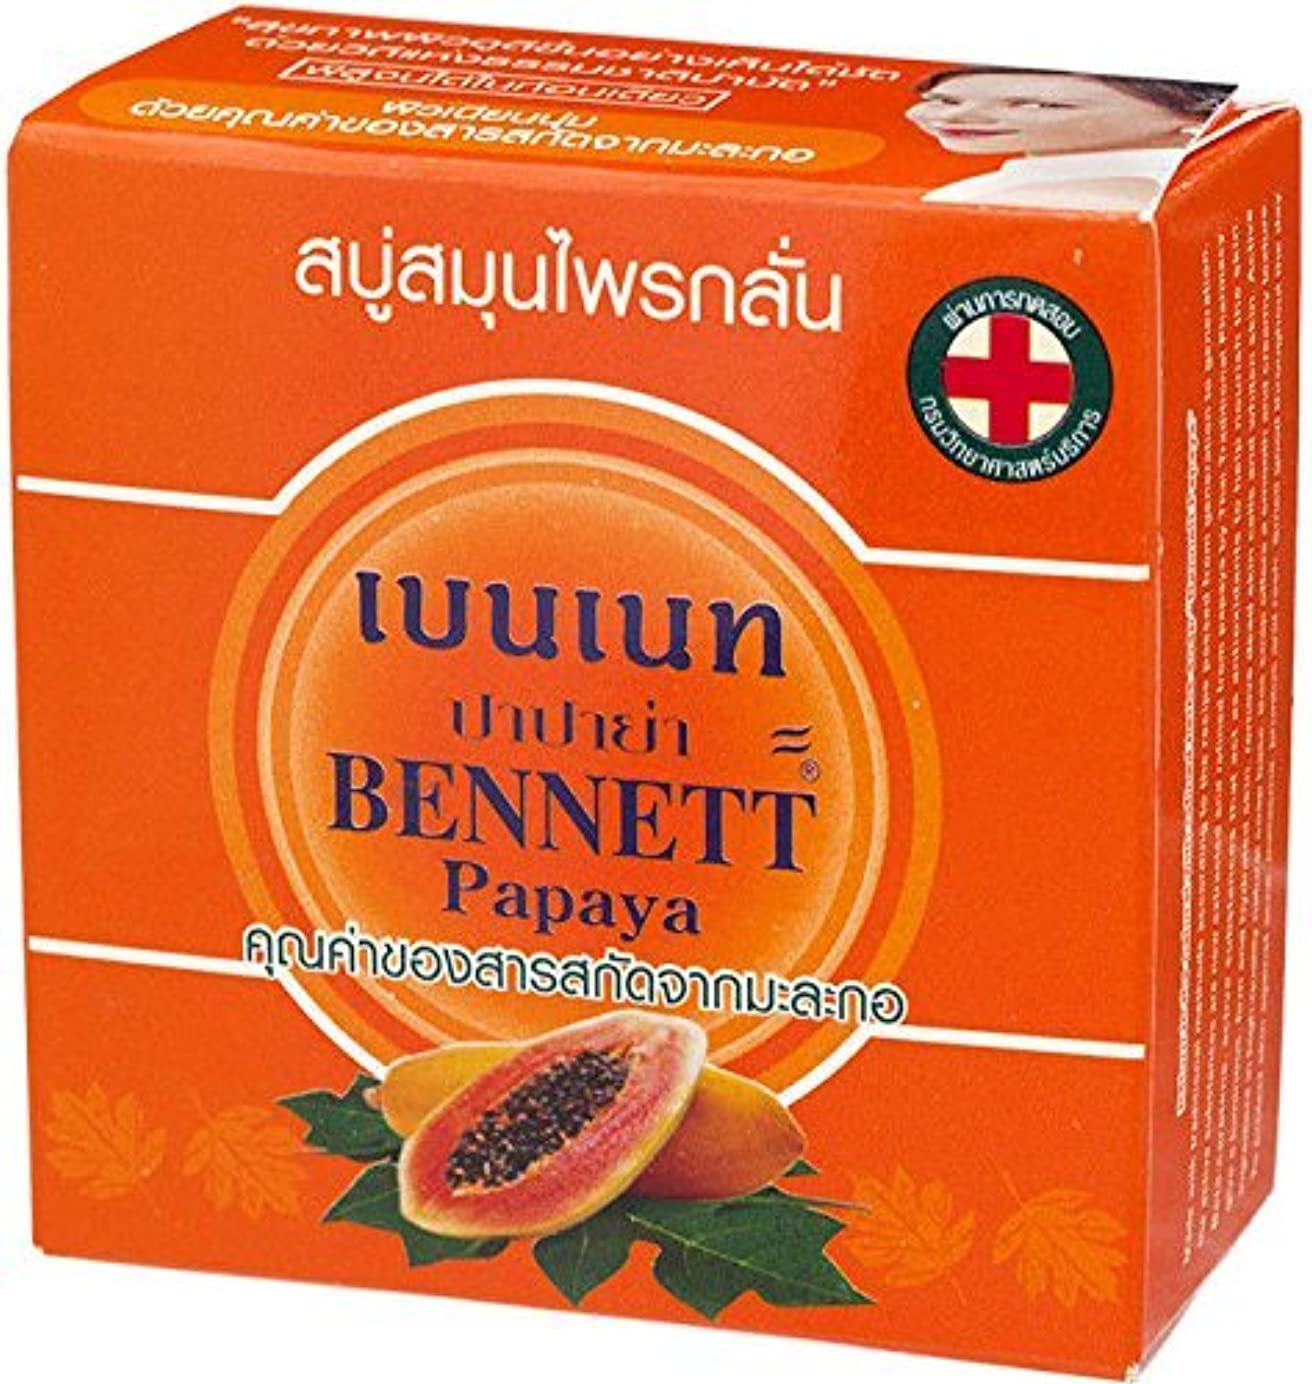 発表許す卒業記念アルバムPARROT HERBAL NATURAL EXTRACT THAI PAPAYA PLUS ALOE VERA AND HONEY SOAP BAR 75G [並行輸入品]